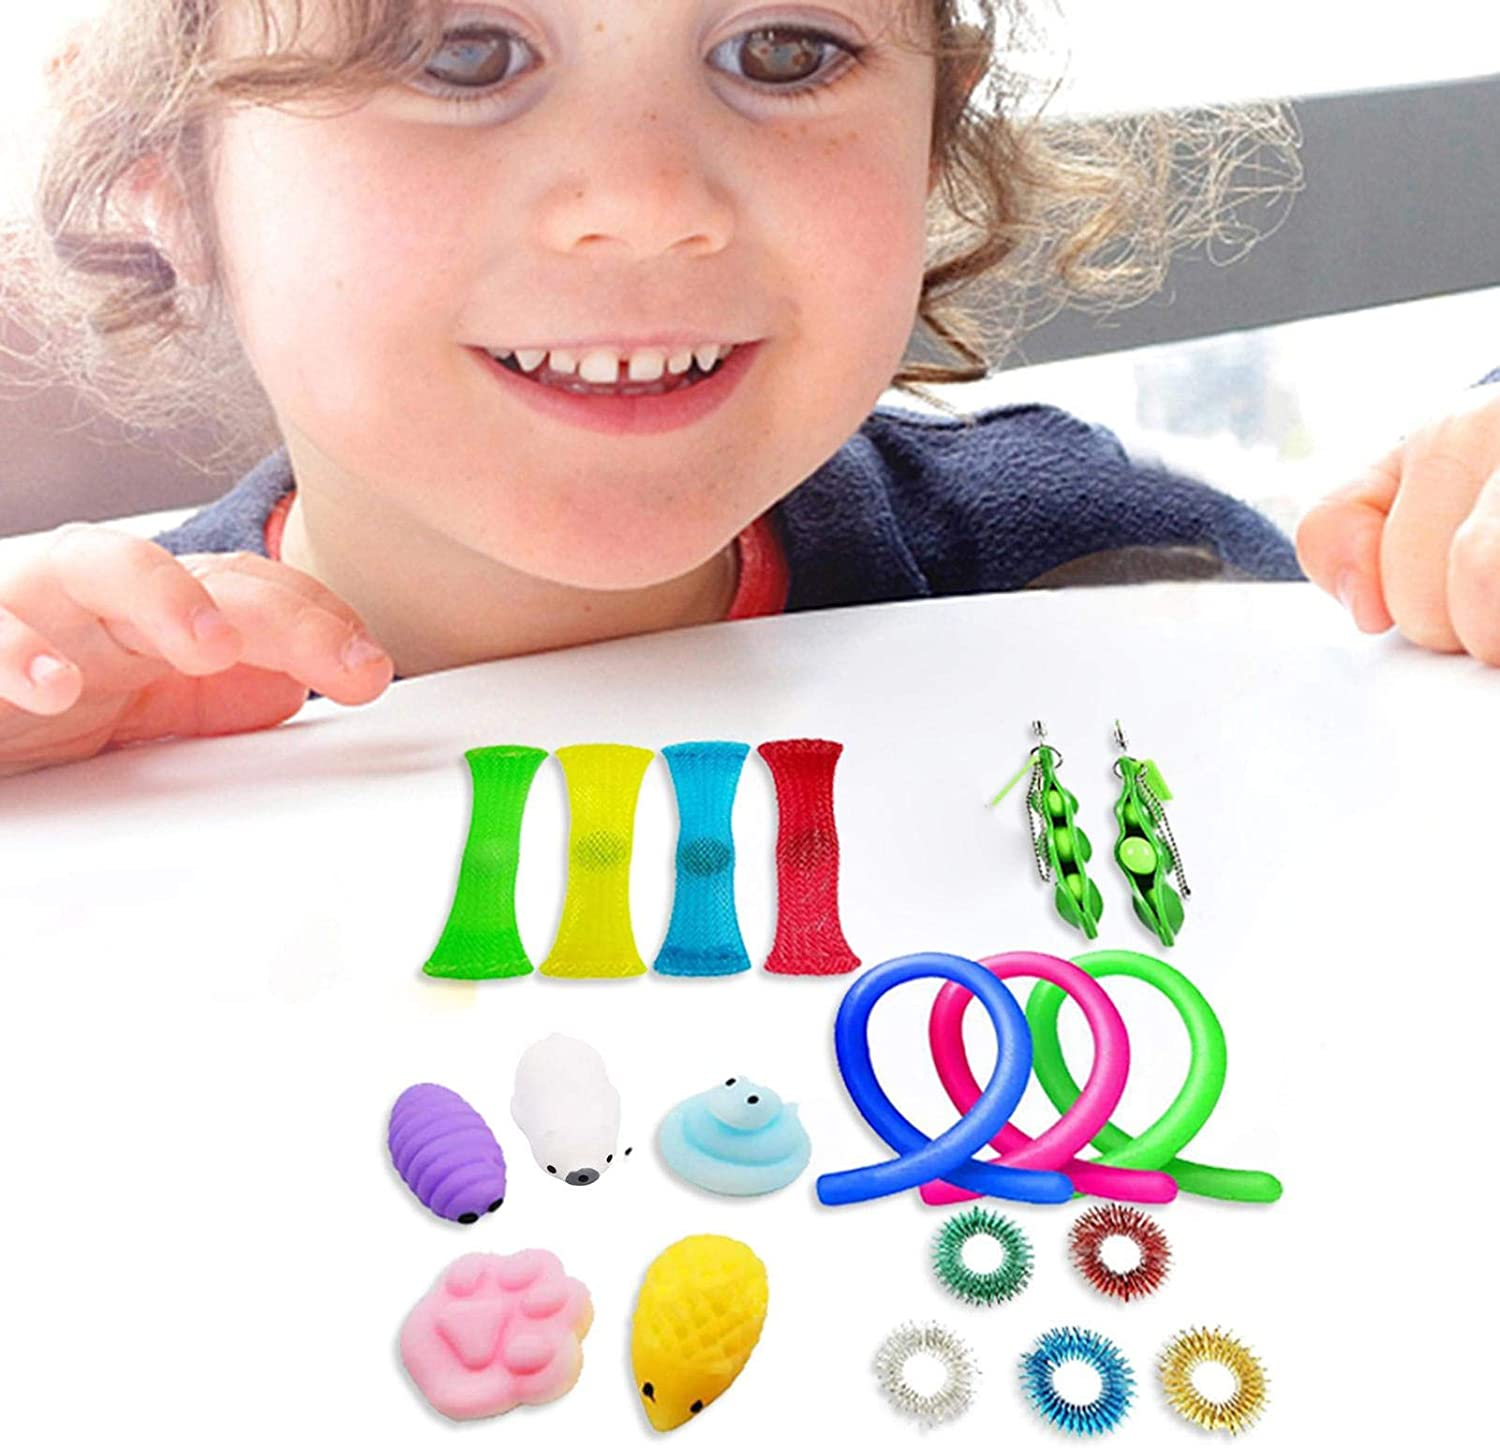 20Pcs Sensory Fidget Toys Set,Stress Relief Fidget Box Toys Pack for Adults Kids Treasure Box Prizes,Carnival Festival Goodie Bag Fillers,Birthday Party Favors Gifts